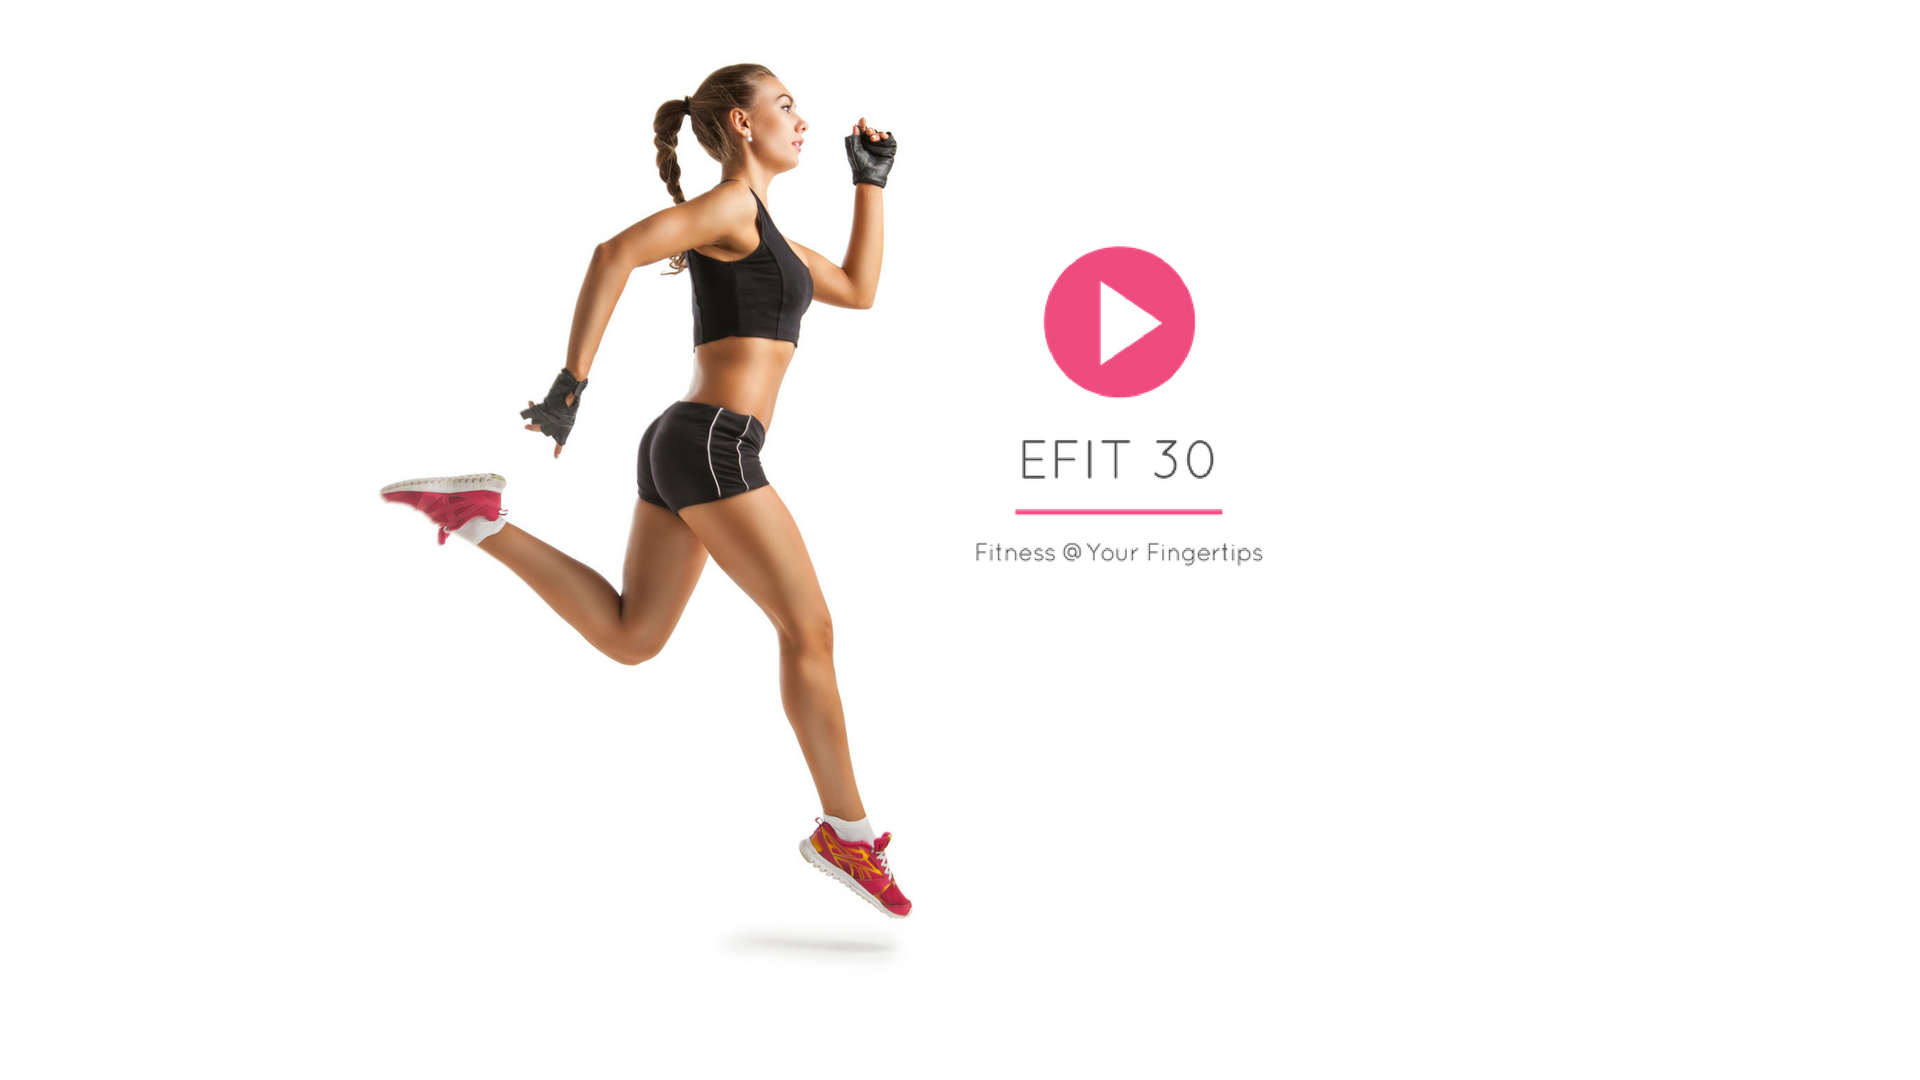 eFit 30 Cardio, Strength, Pllates, Yoga At Home